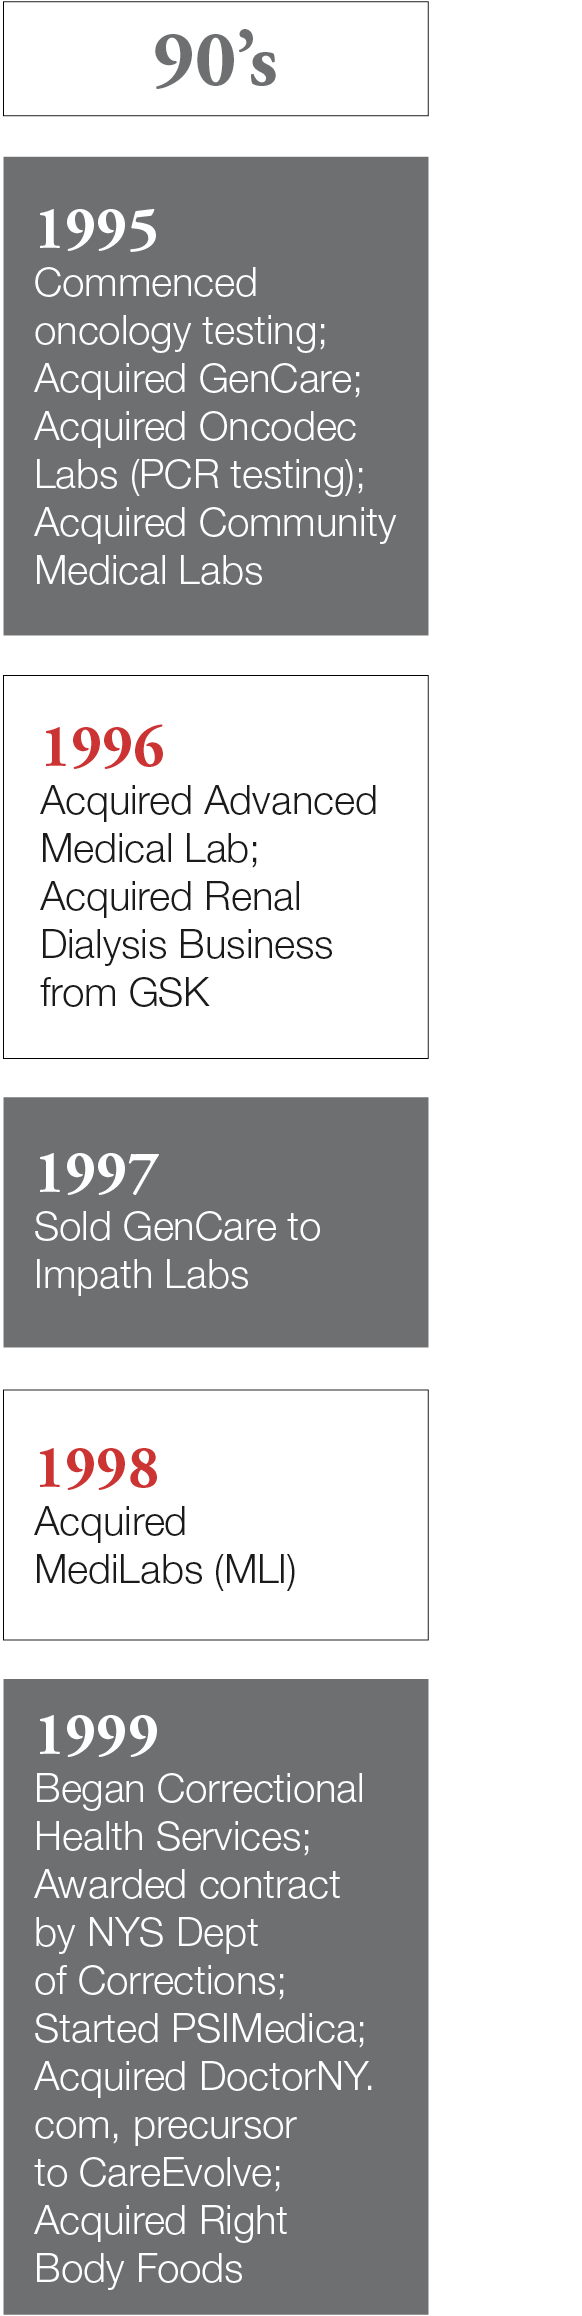 Timeline 90's: 1995 - commenced oncology testing, acquired gencare, acquired oncodec labs (PCR testing), acquired community medical labs